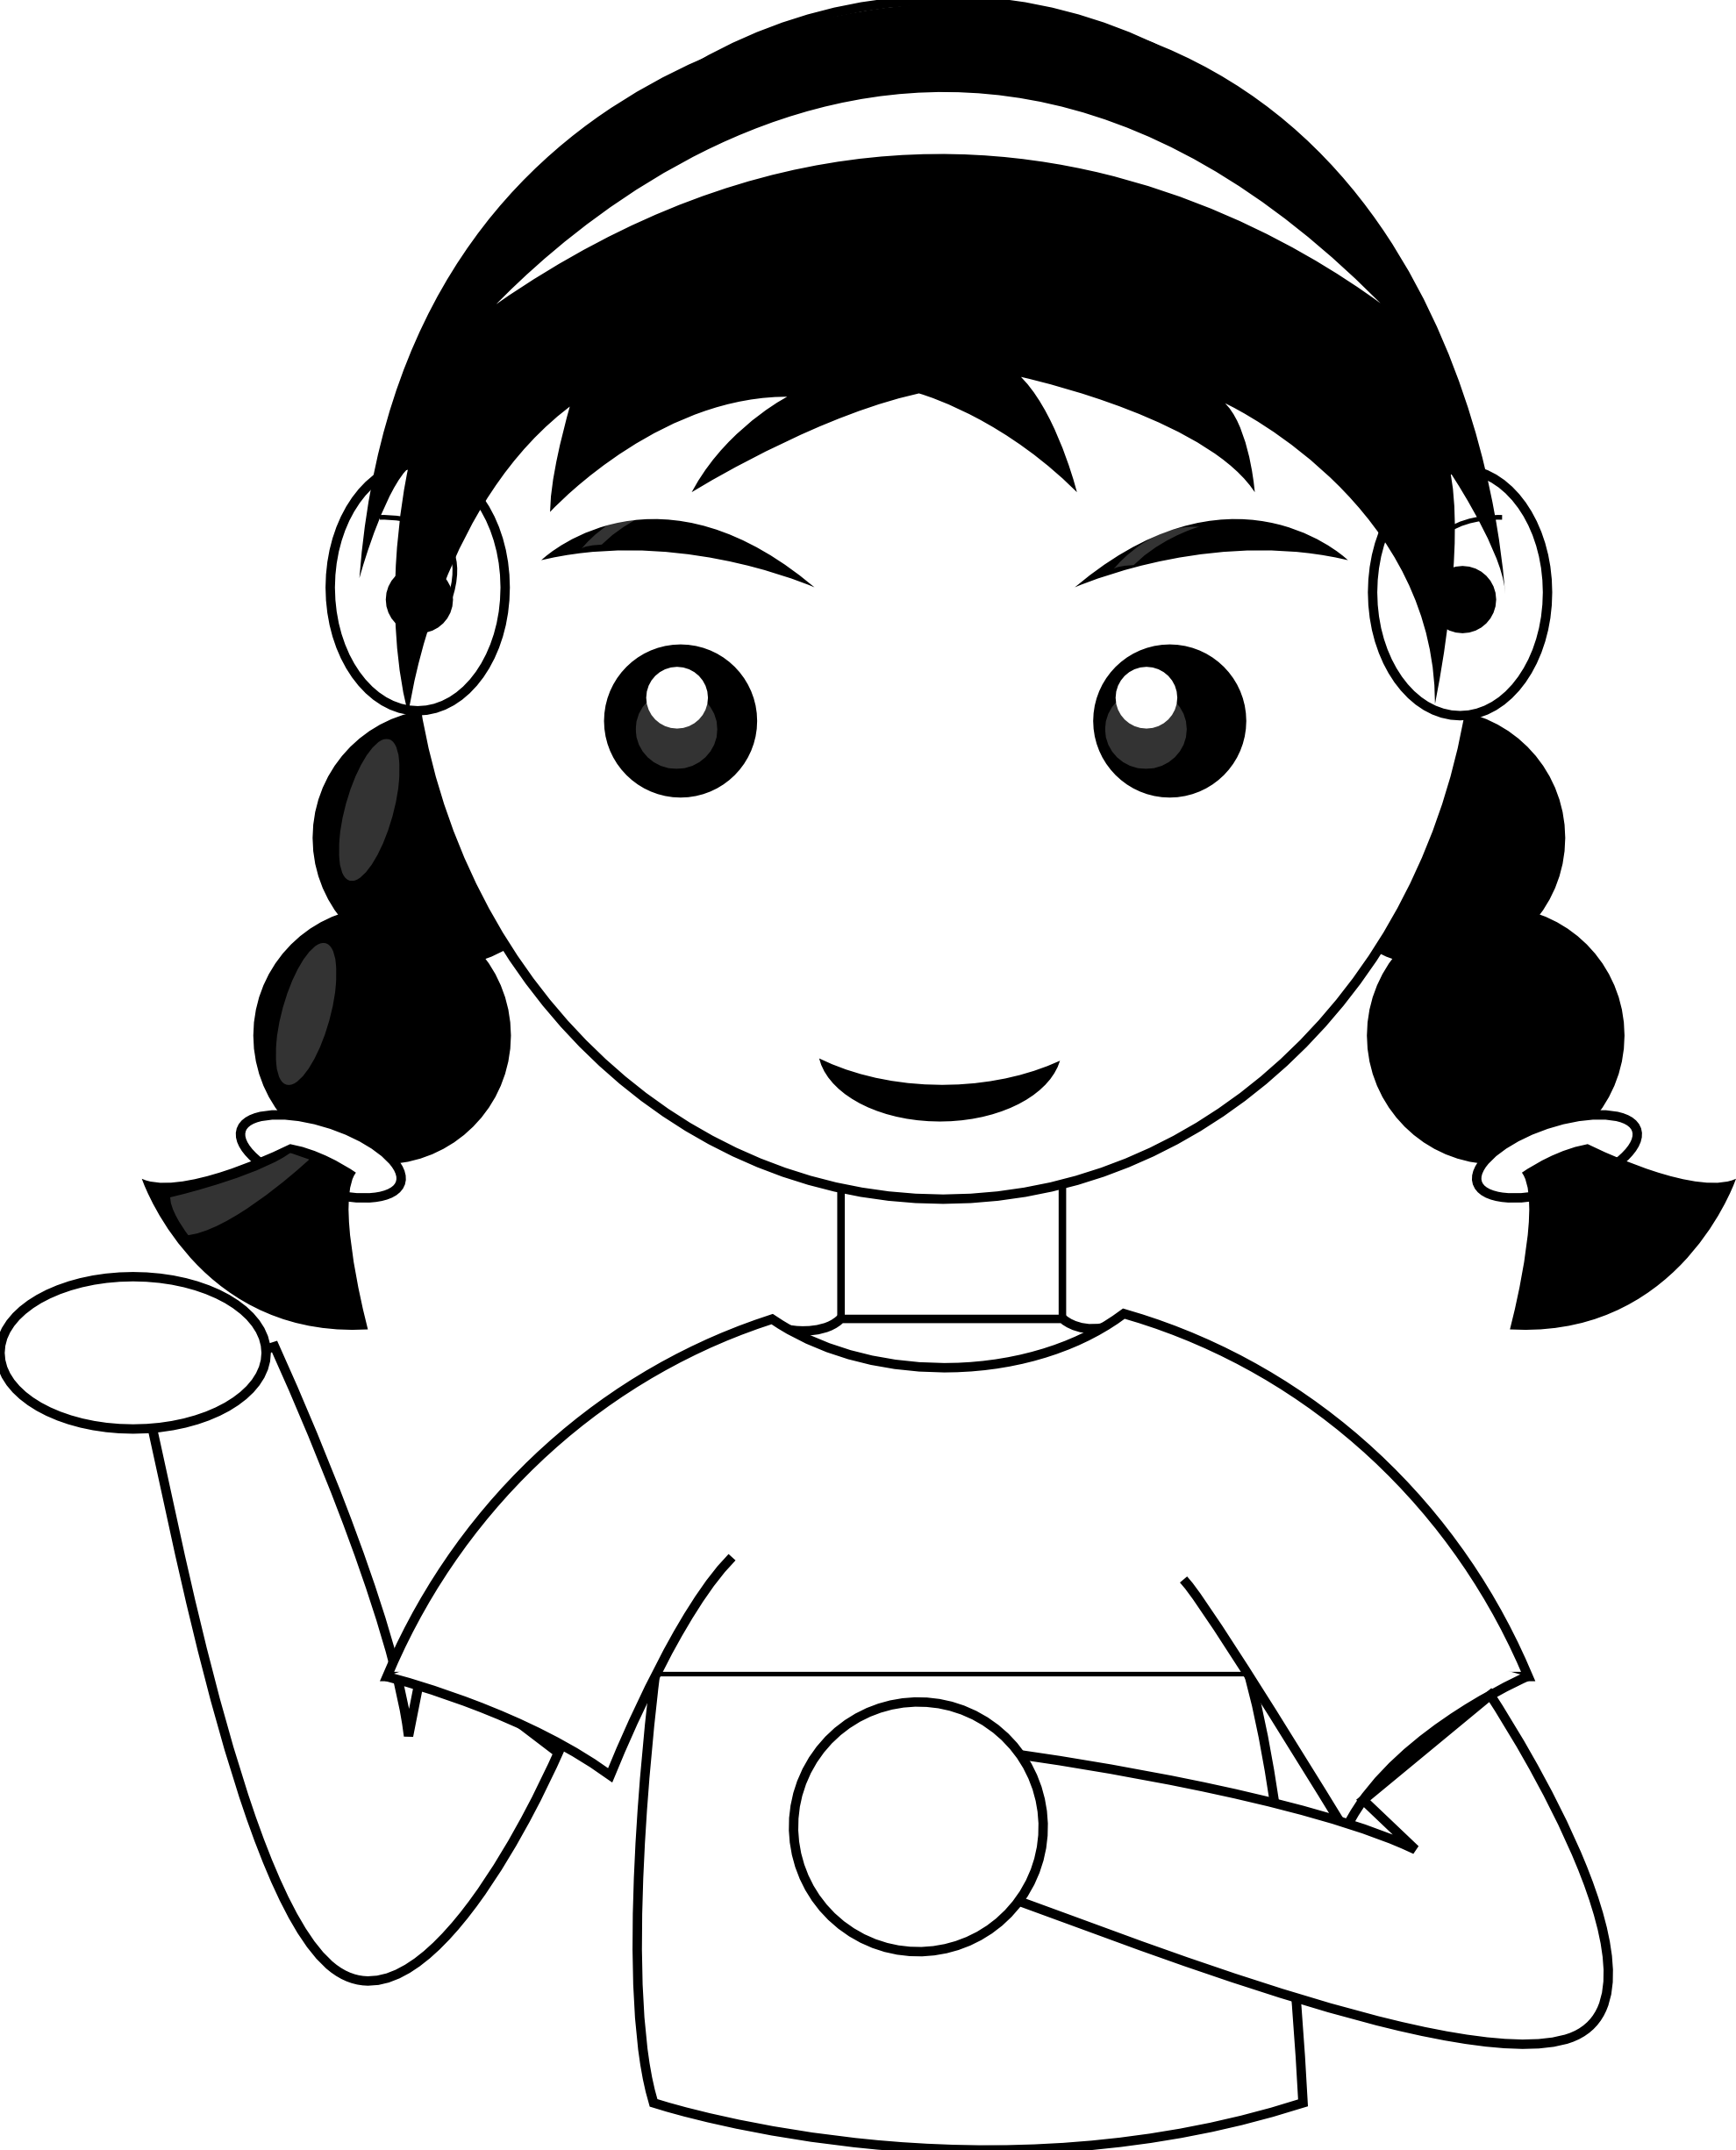 banner black and white stock Sister clipart black and white.  collection of high